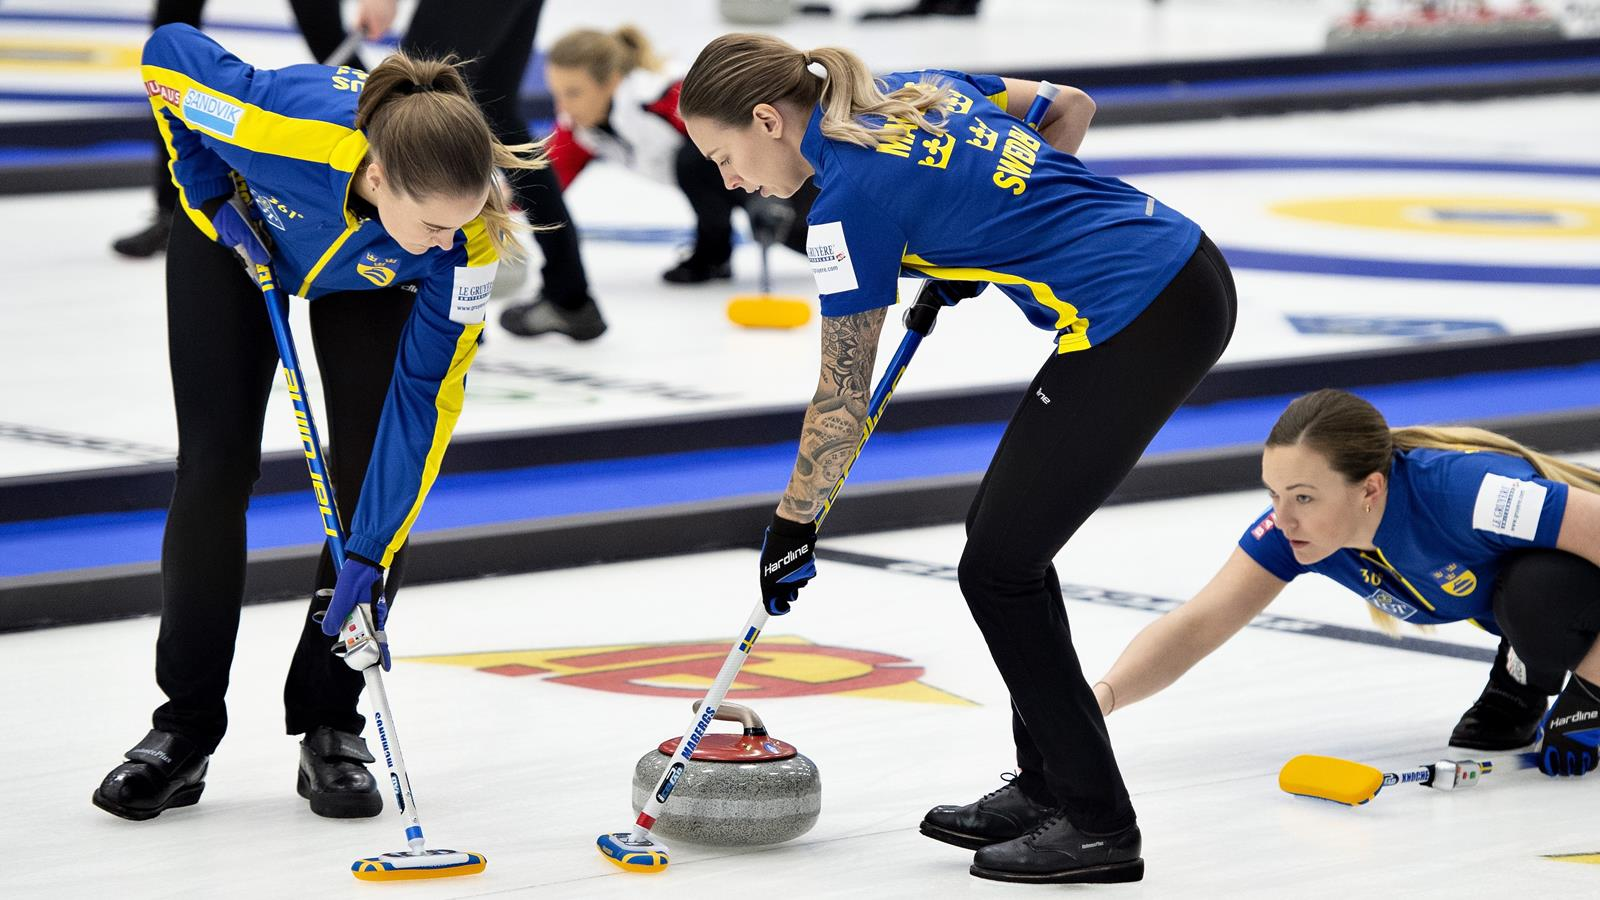 Curling news - World Women's Curling Championship: Sweden hold their